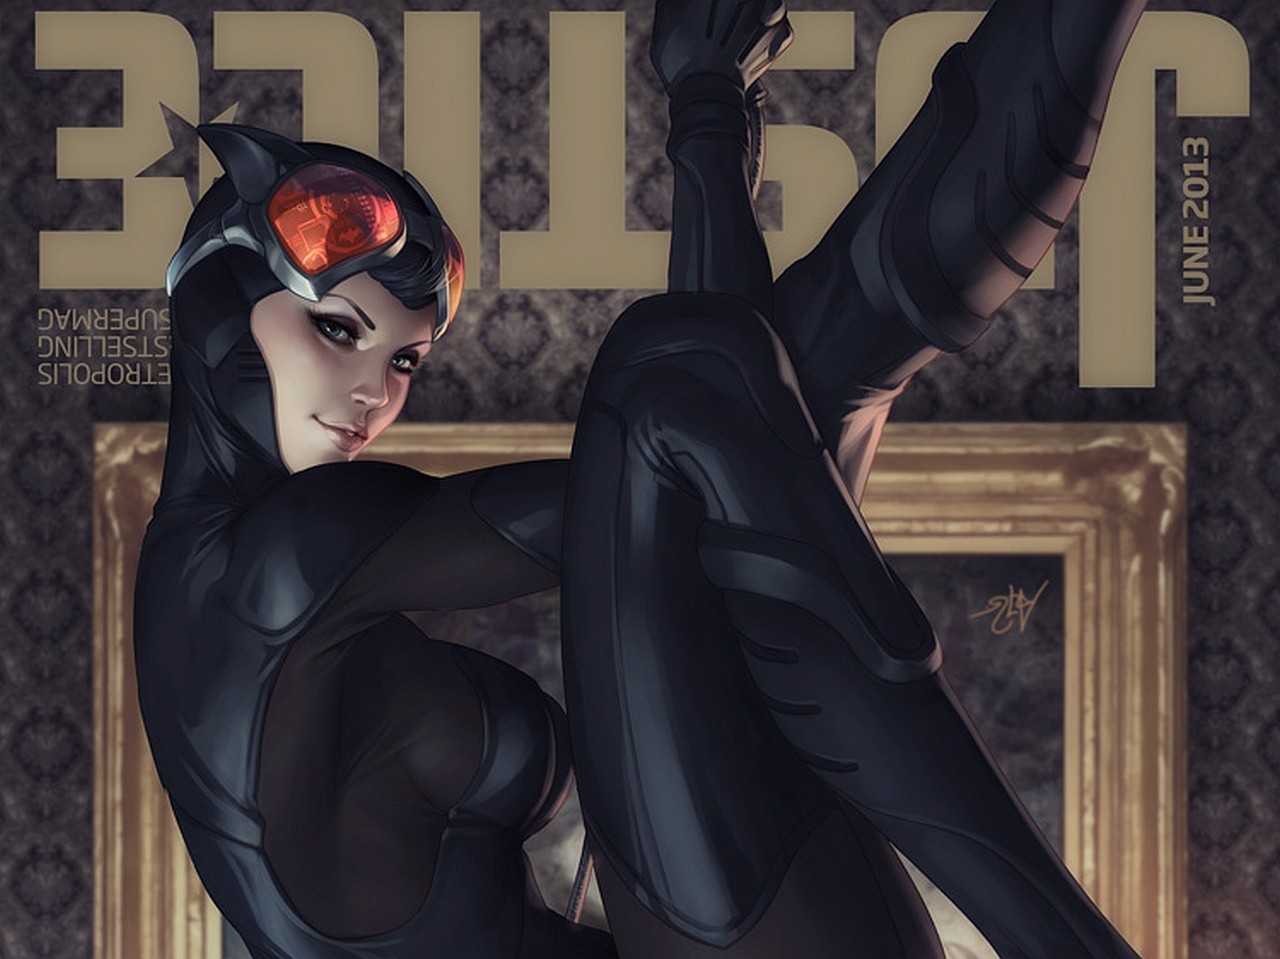 Catwoman Computer Wallpapers Desktop Backgrounds 1280x959 ID 1280x959